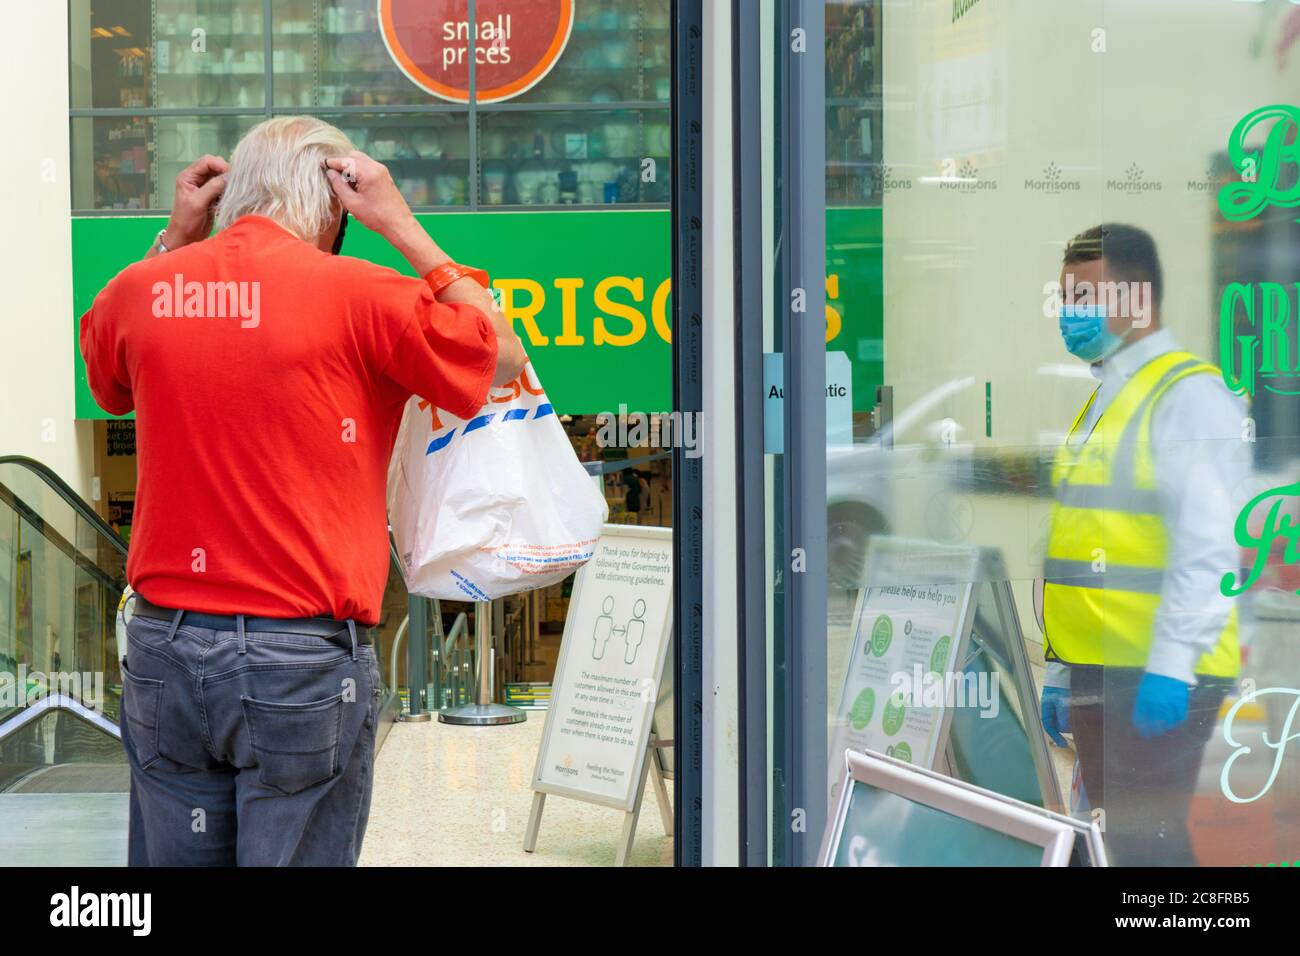 London Uk Friday 24 July 2020 A Shopper Putting On A Protective Mask On Entering A